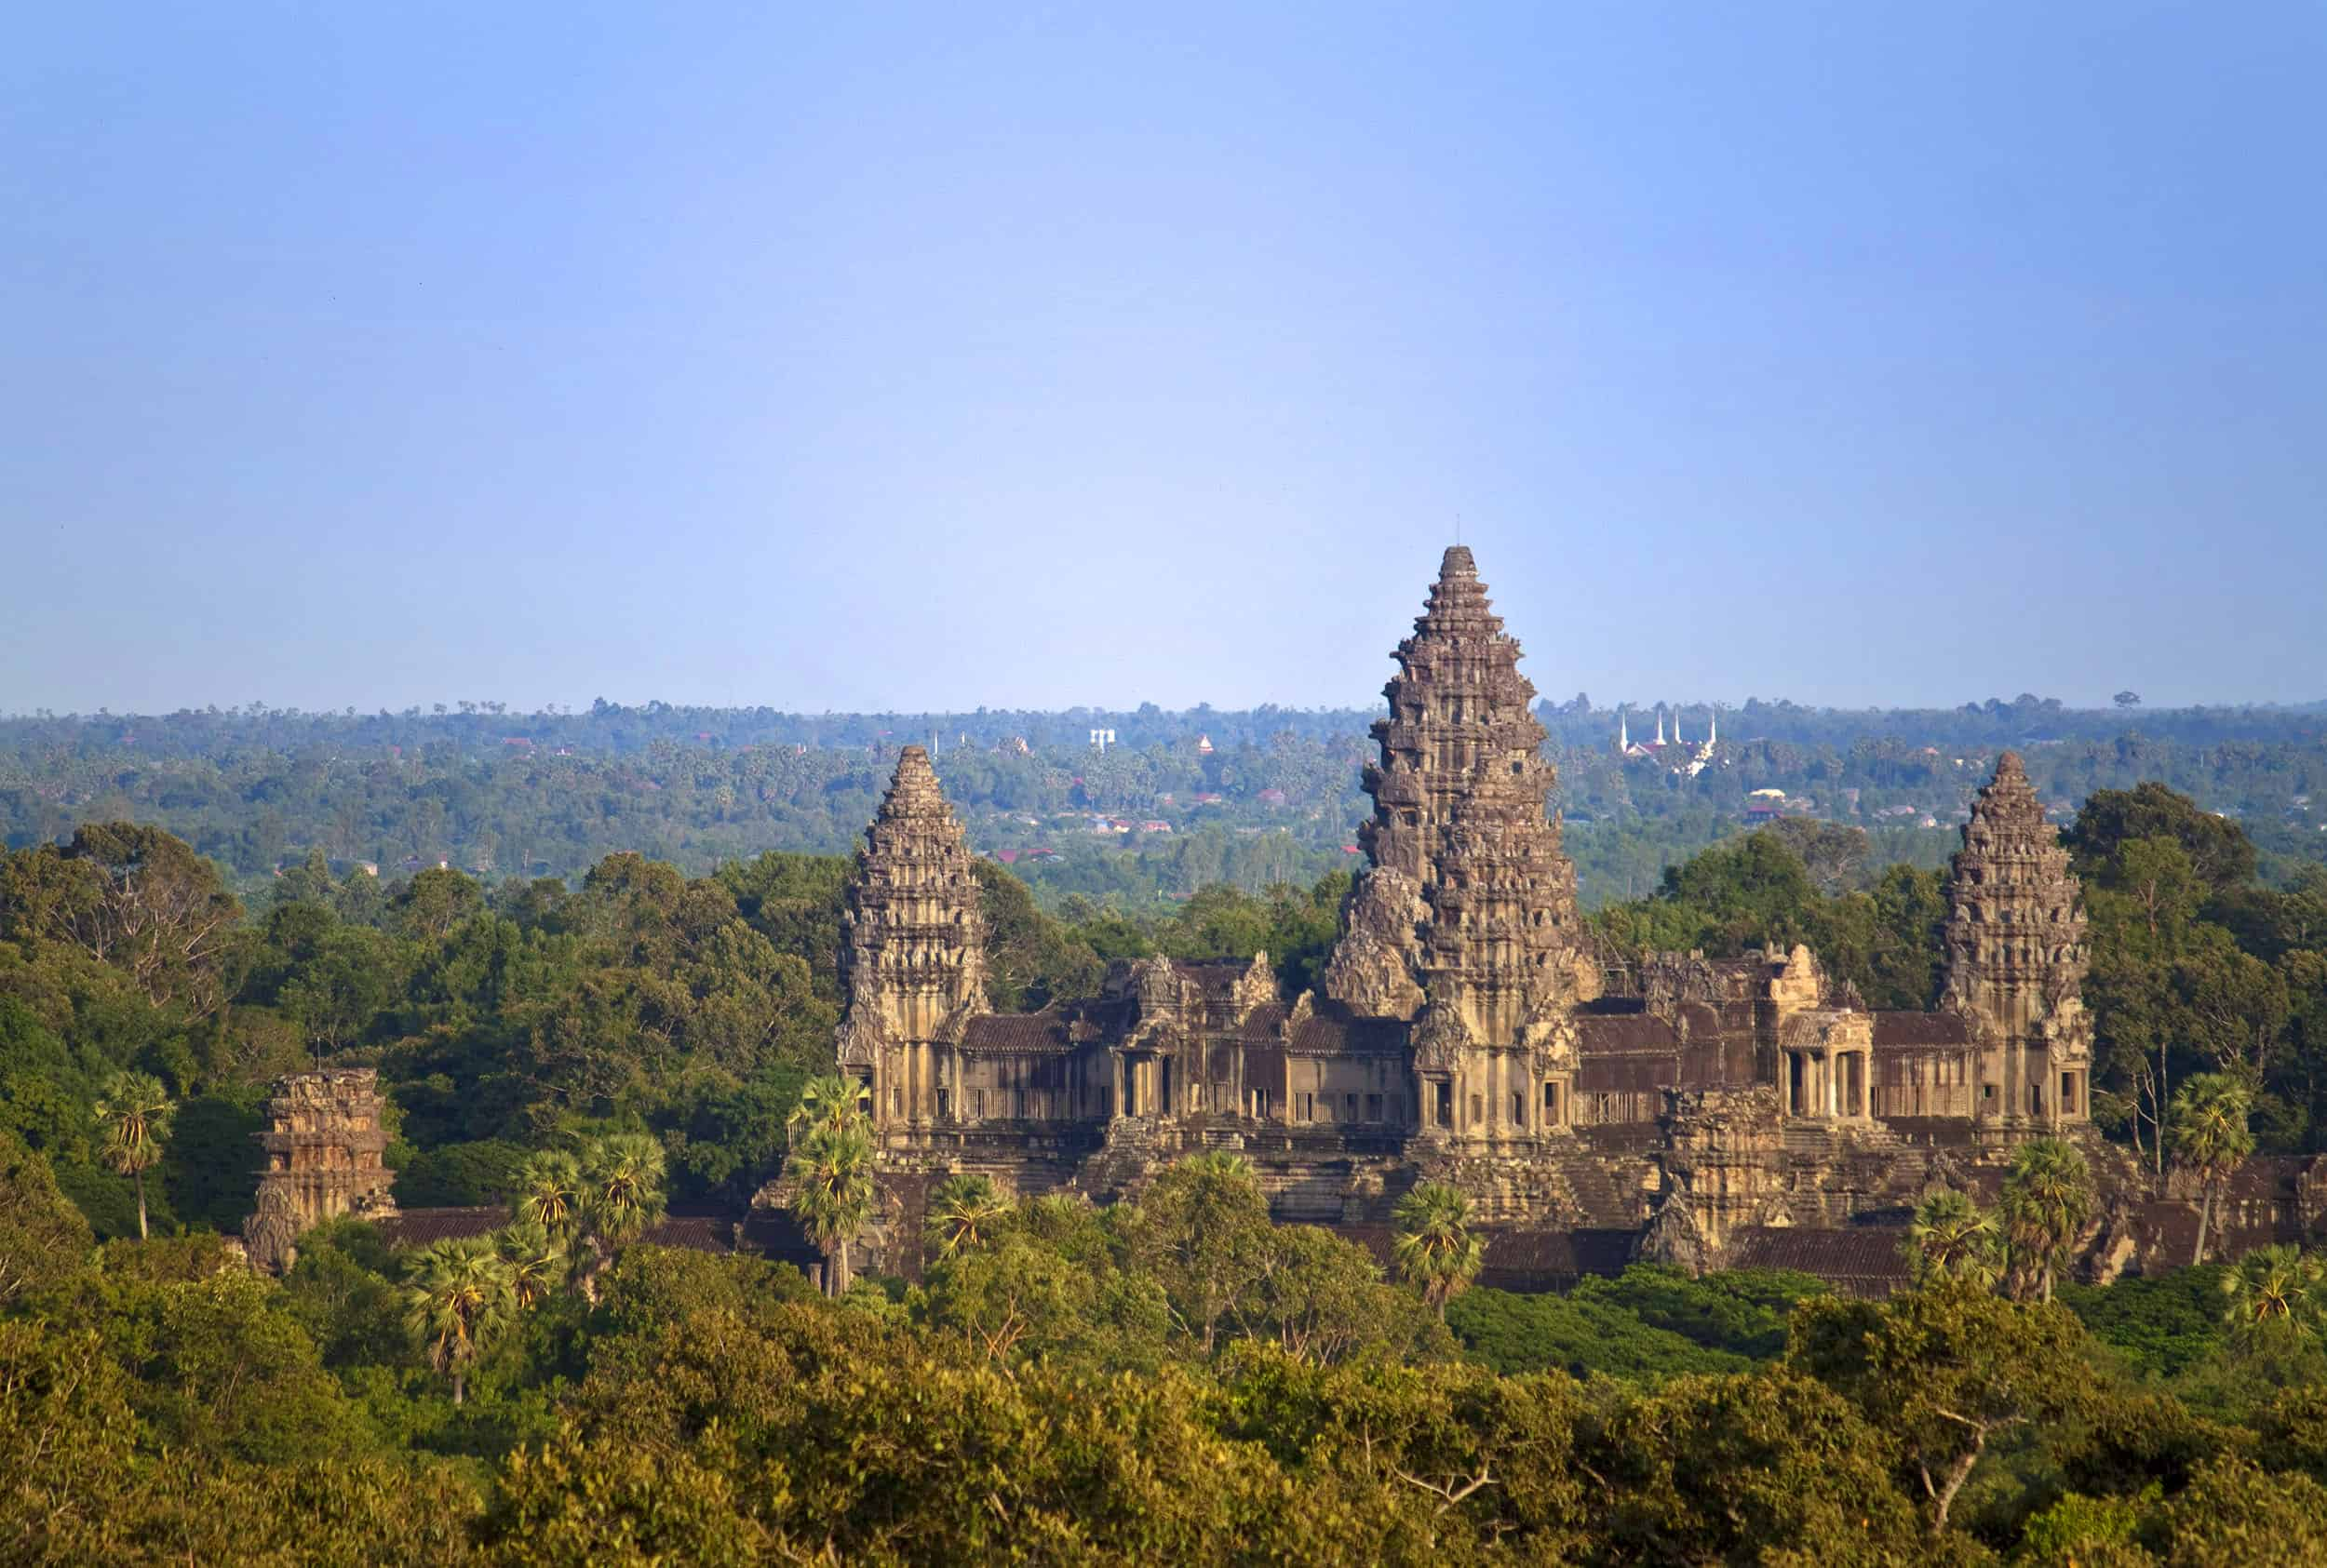 Angkor Wat Temple in Cambodia from a far above the jungle canopy